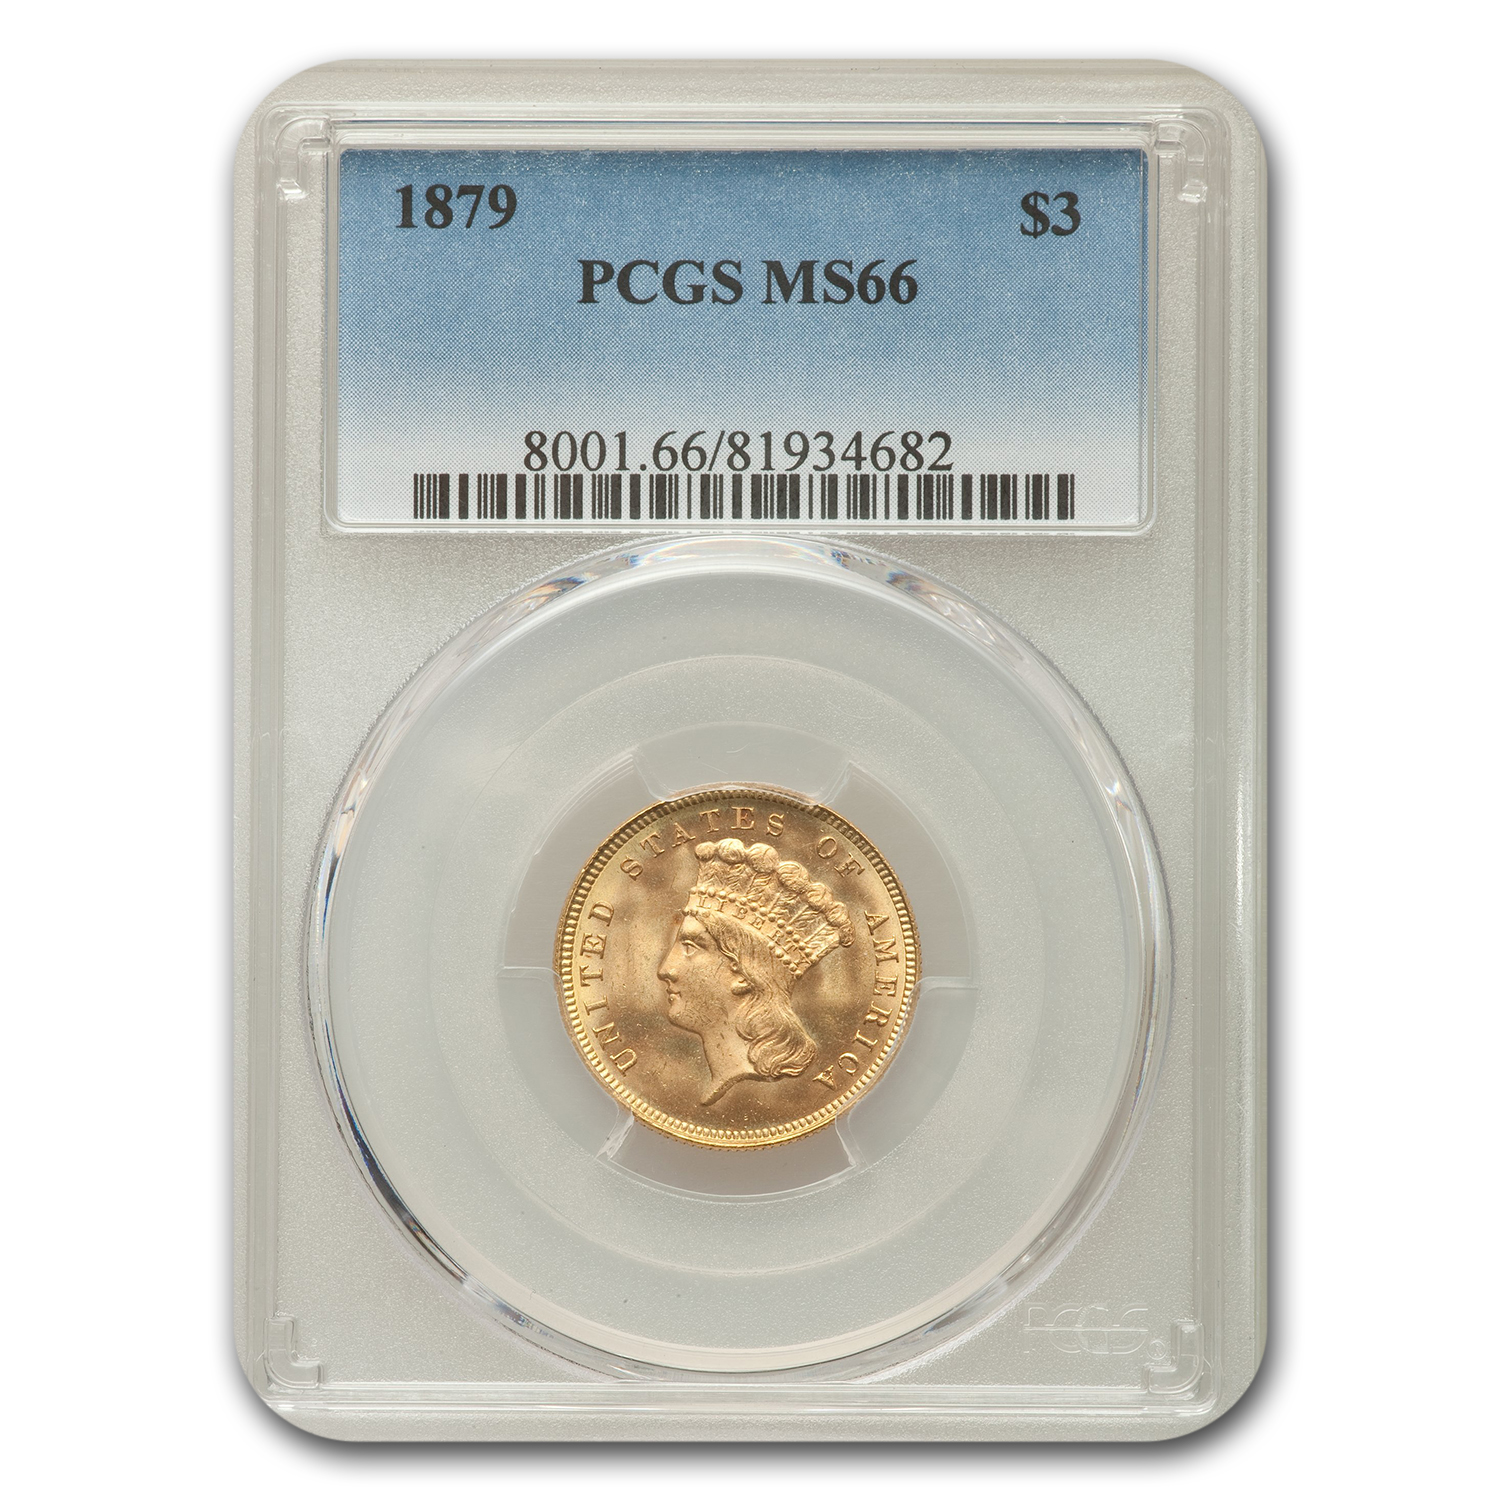 1879 Gold $3 Princess MS-66 PCGS